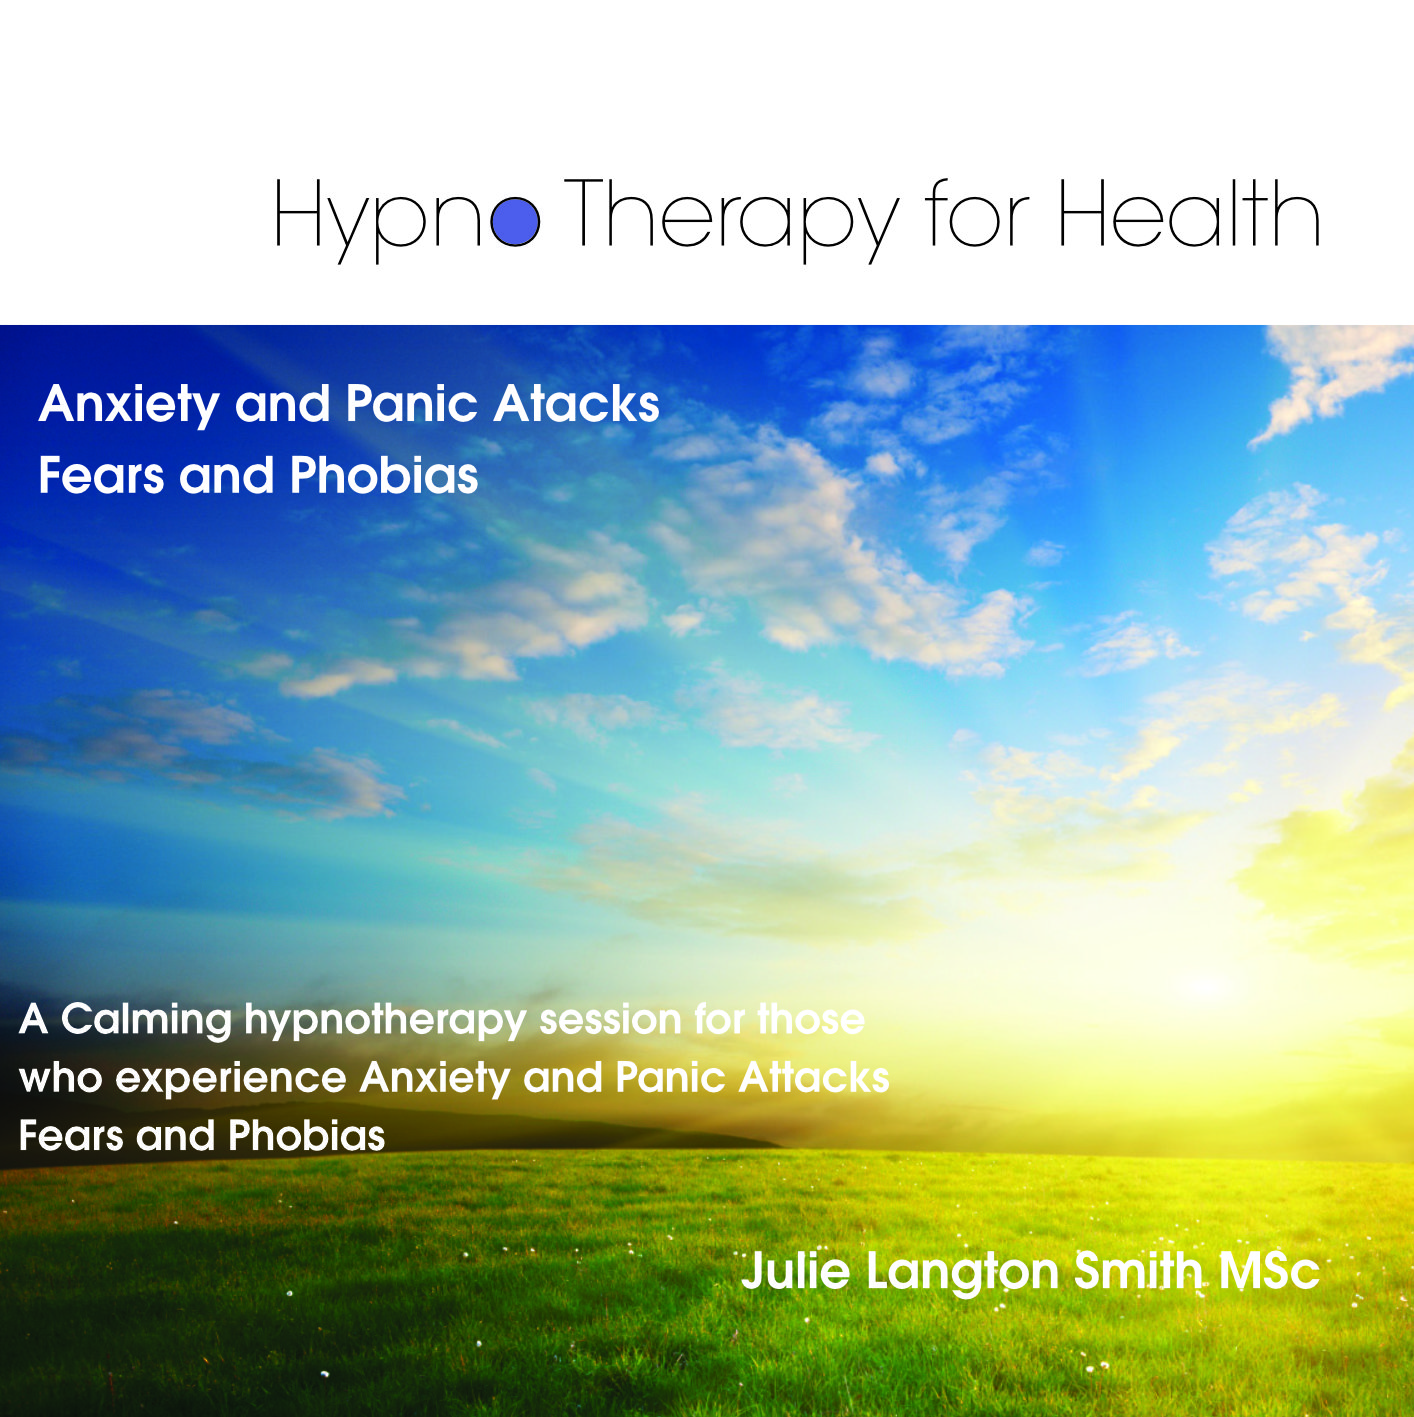 Hypnotherapy - Anxiety, panic attacks, fears and phobias.